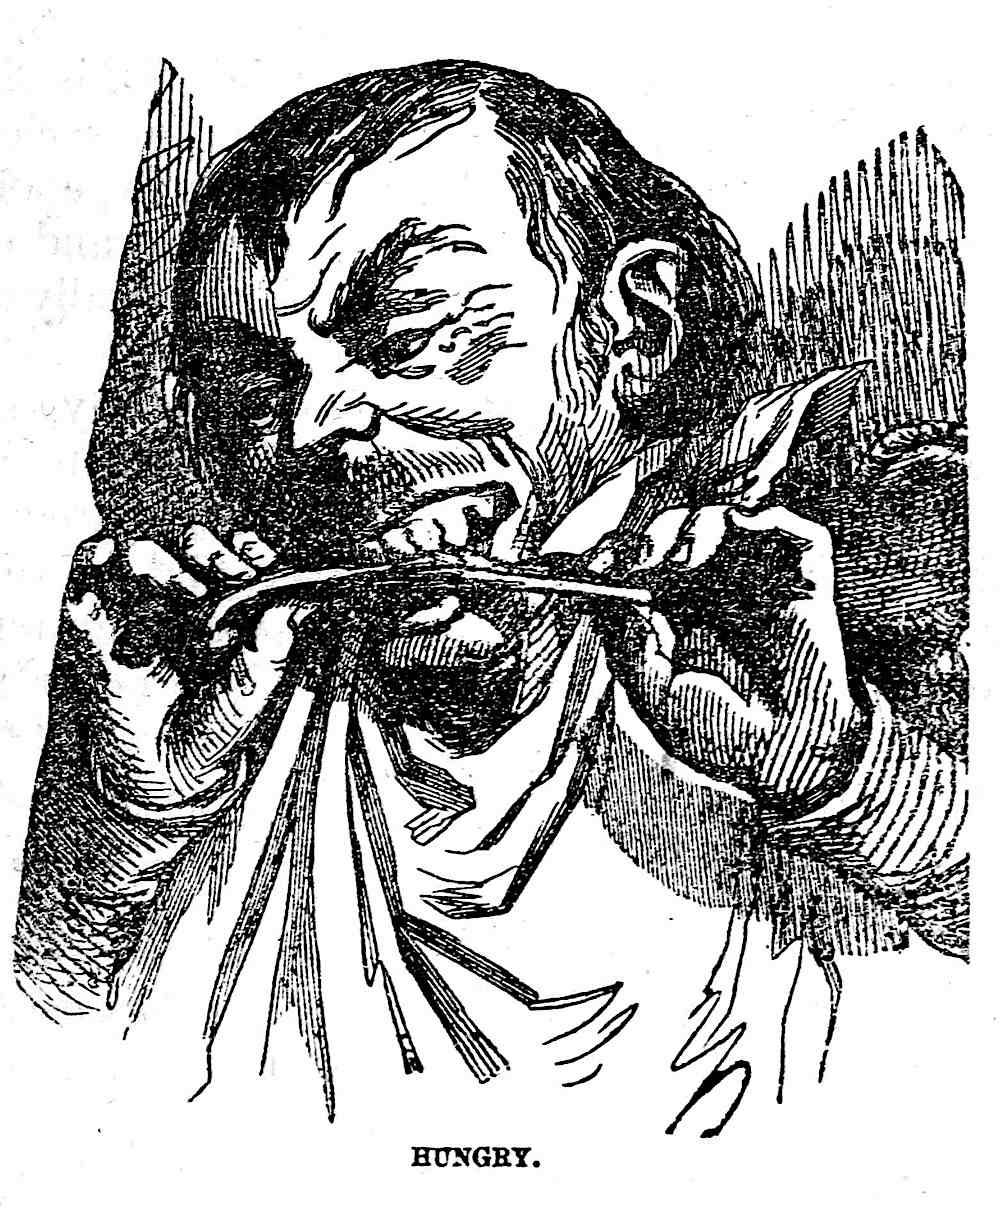 1855 bad etiquette, an illustration of a man chewing a bone